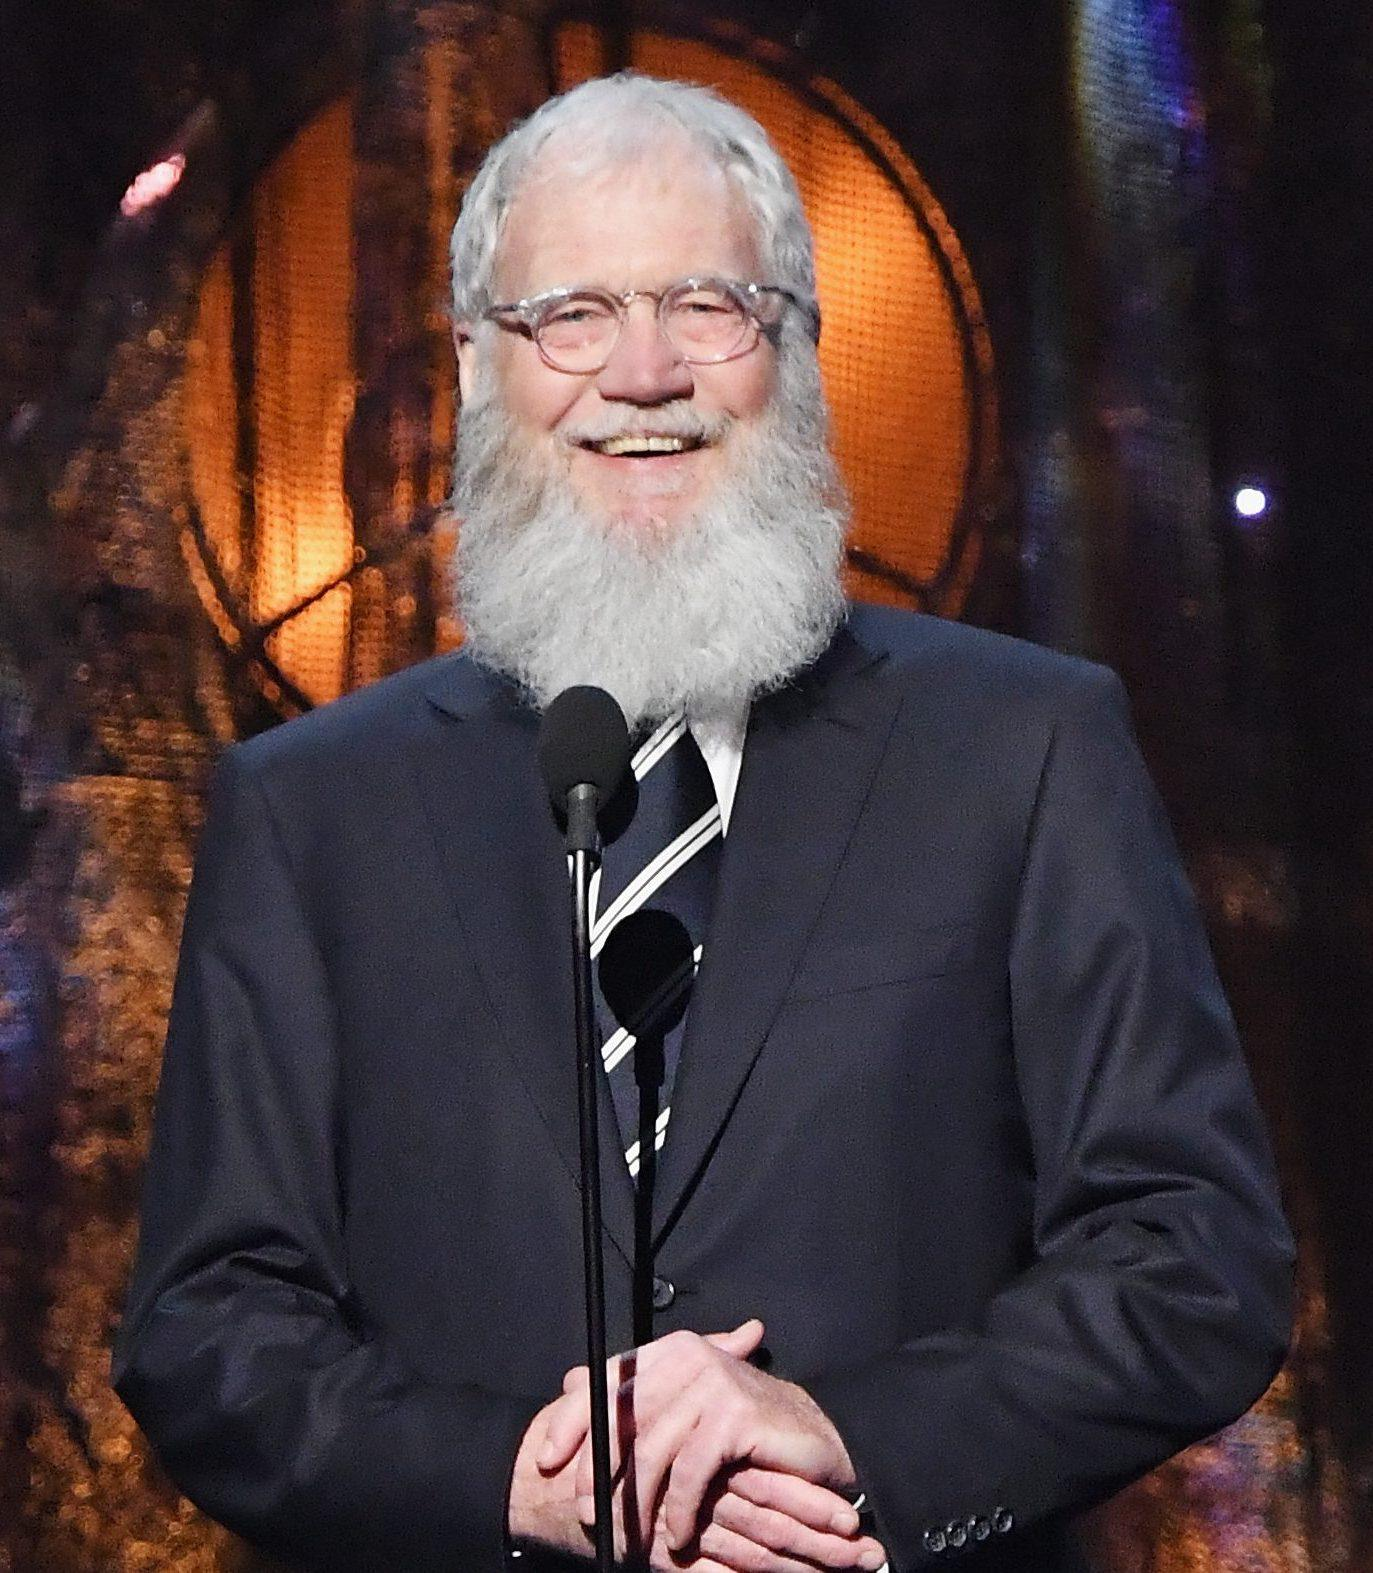 665983280 e1502211549476 25 Things You Never Knew About David Letterman